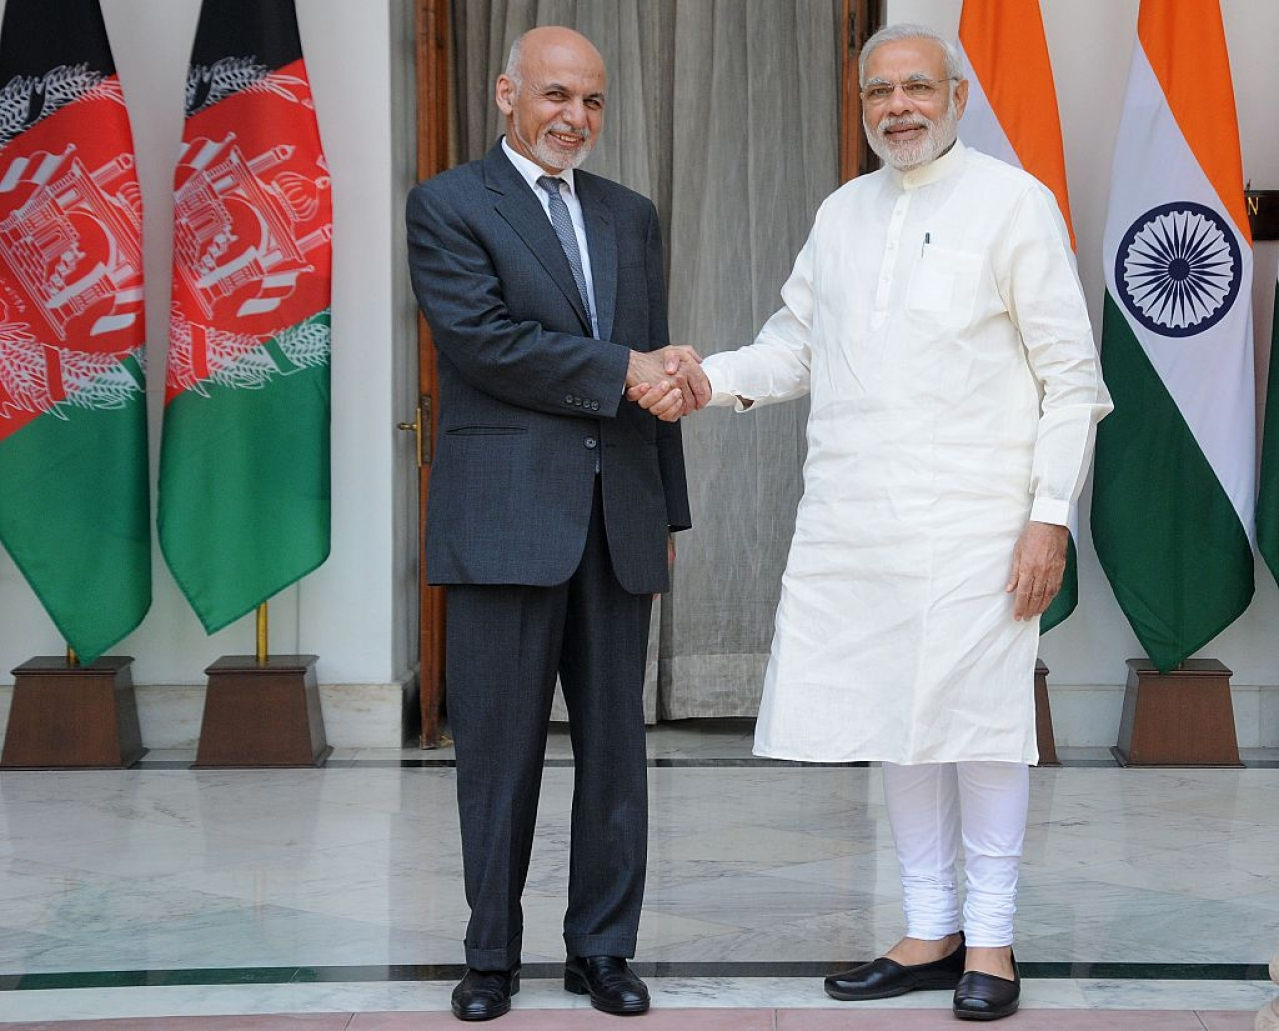 Ghani shakes hands with Modi in New Delhi. Photo credit: STRDEL/AFP/GettyImages